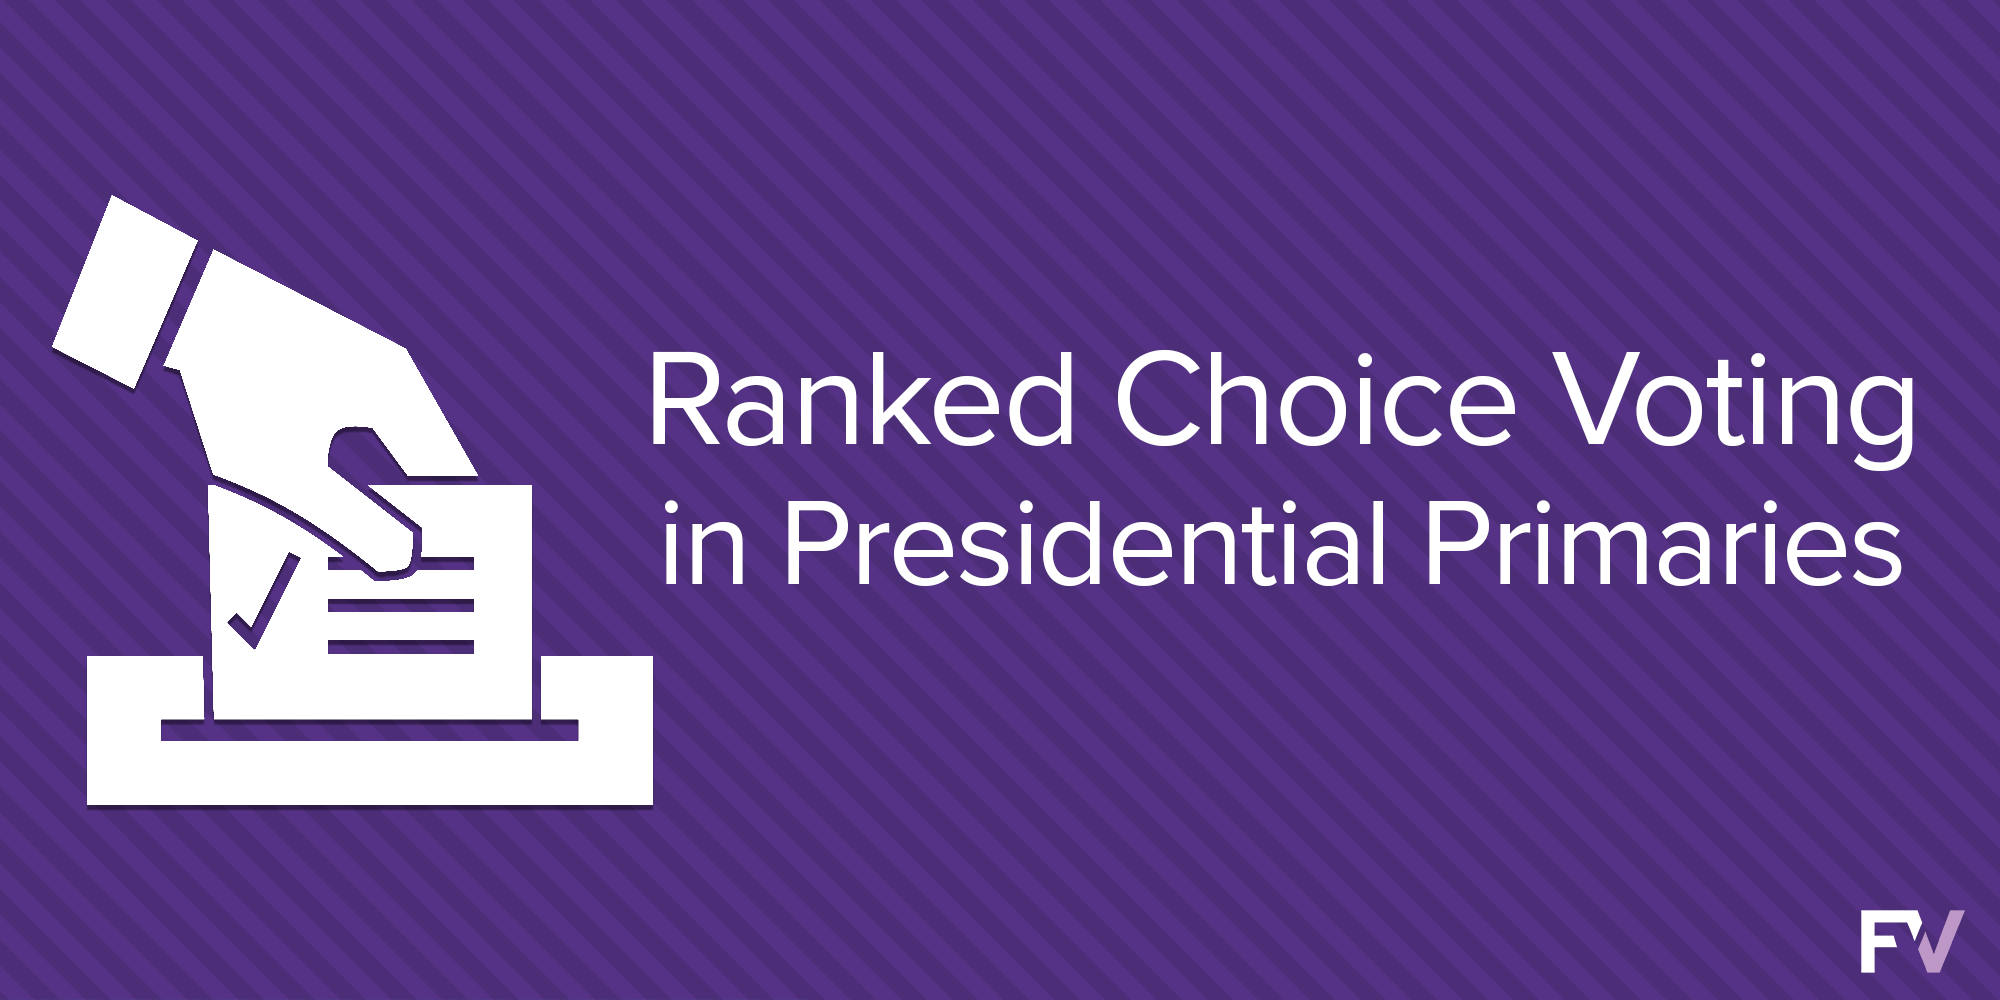 Ranked choice voting offers improvements to presidential primaries